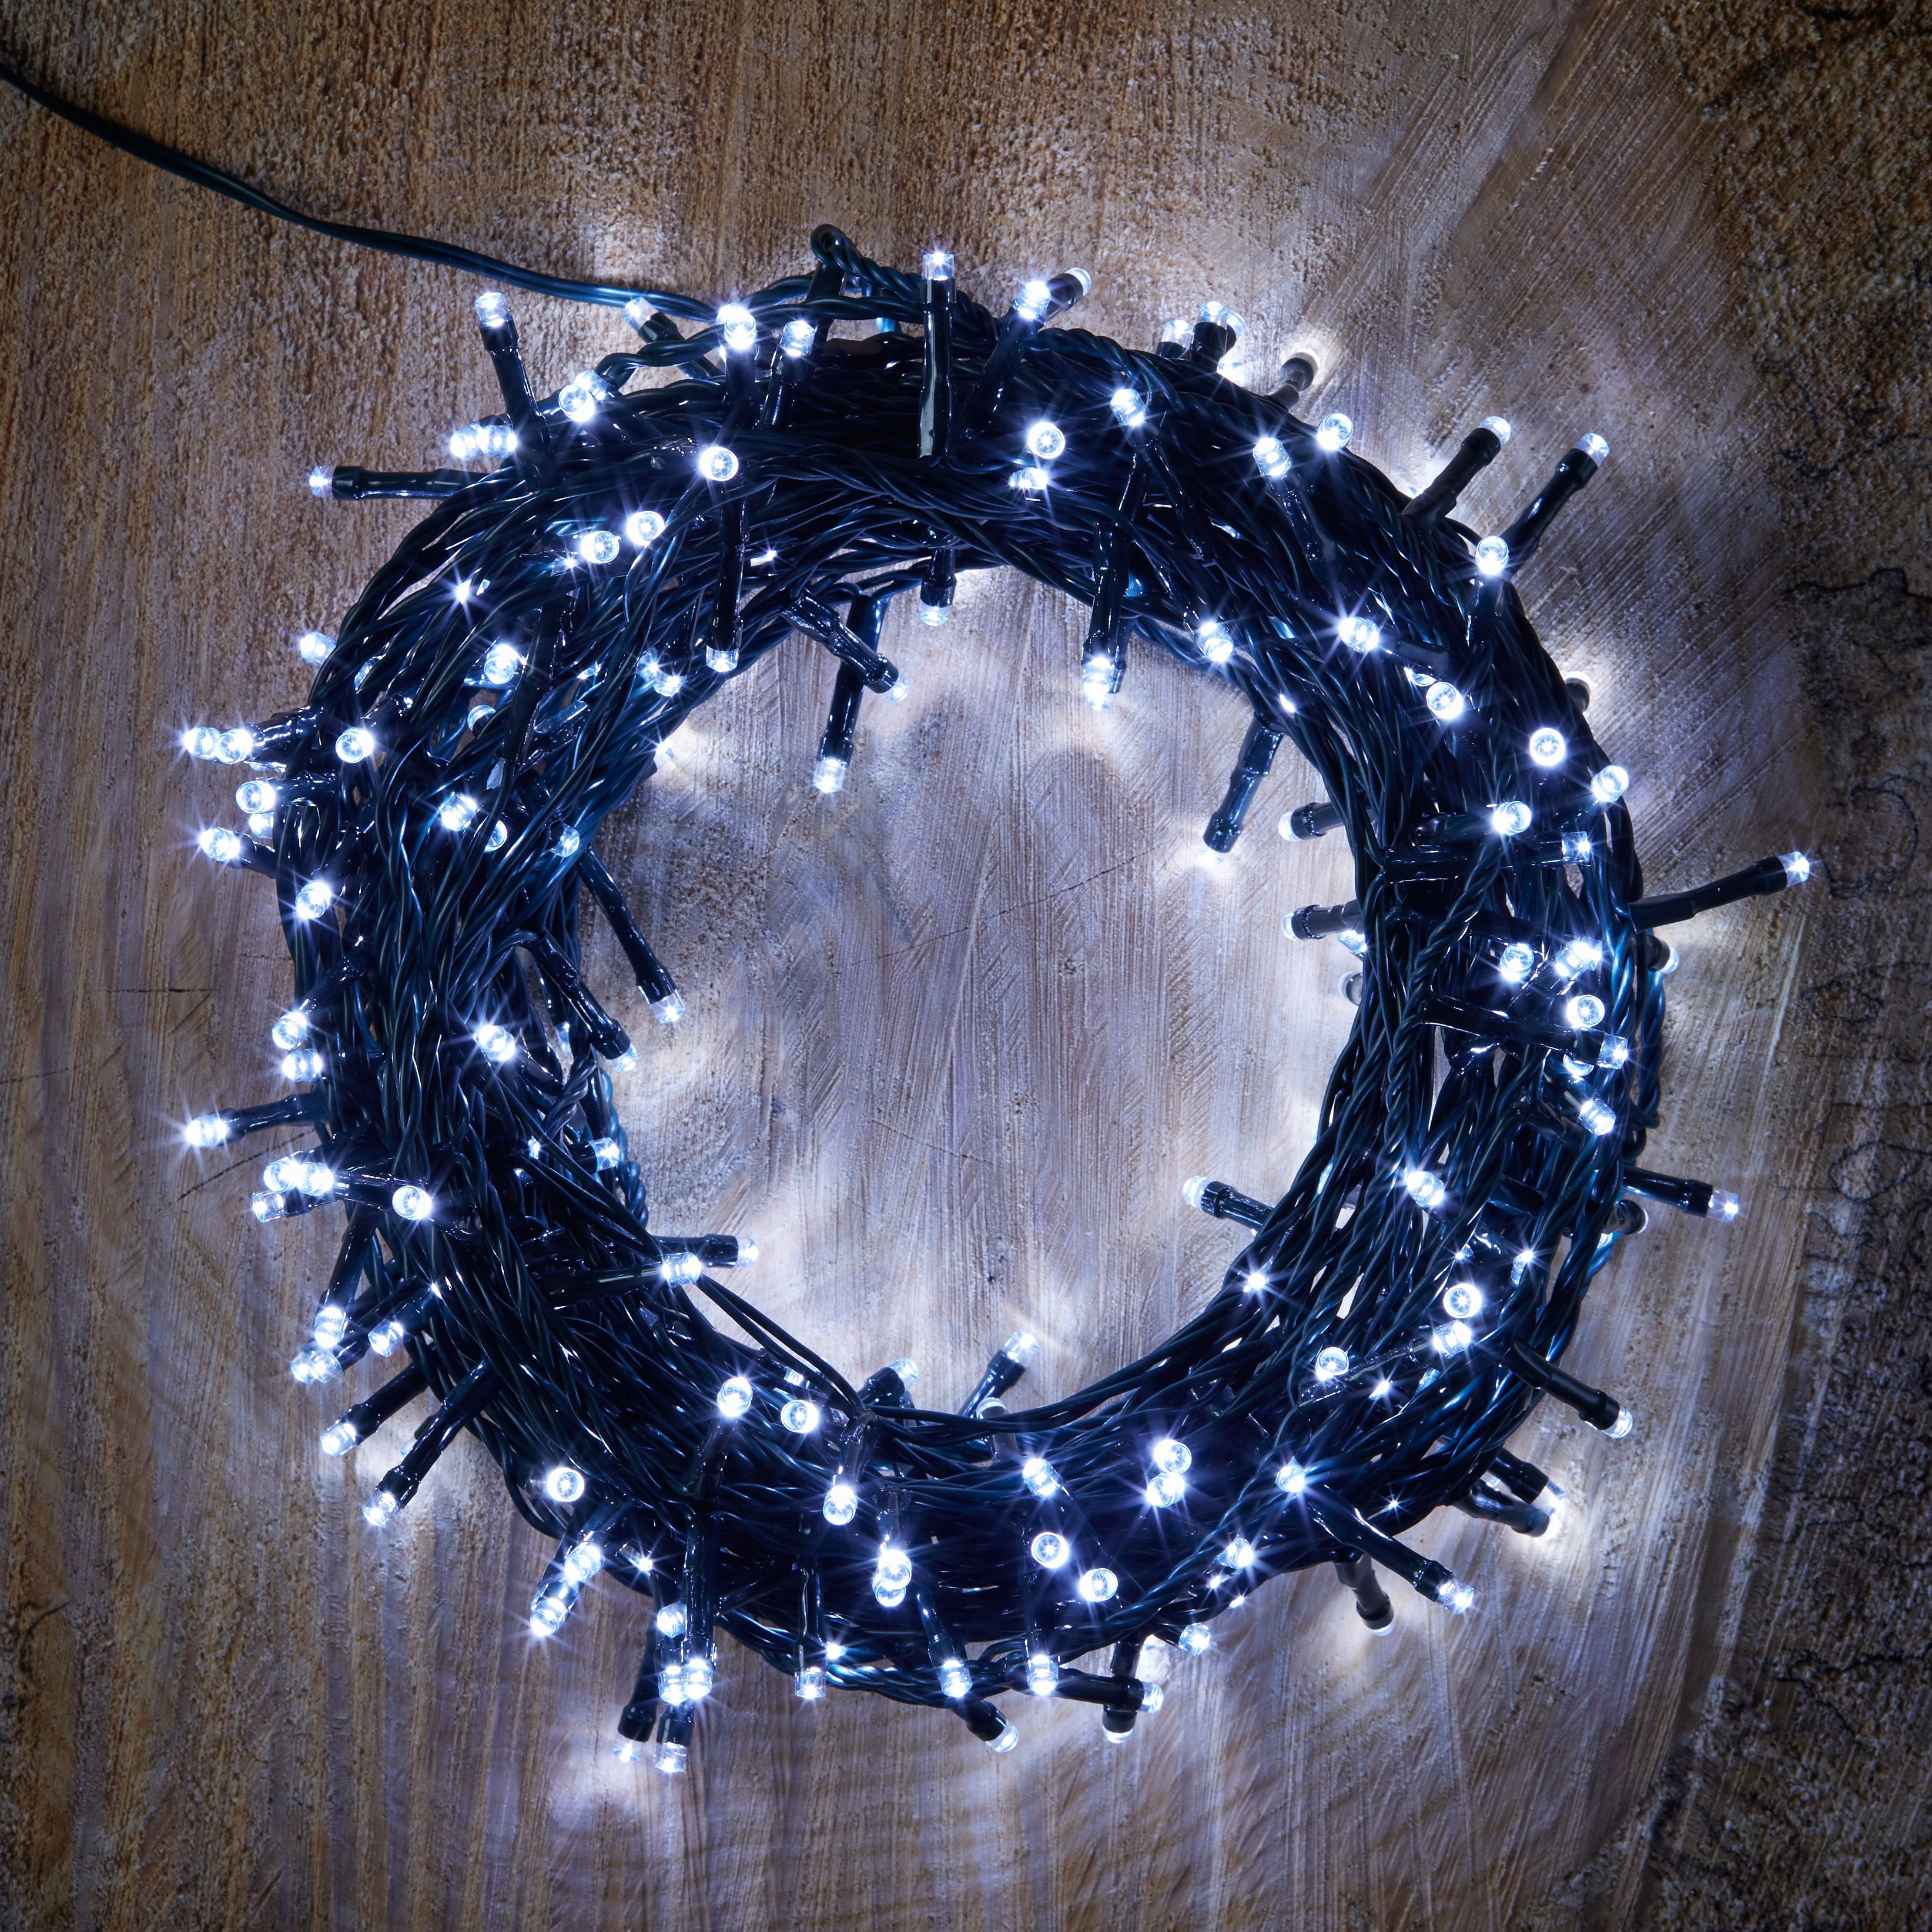 Led String Lights Diy : 240 Ice White LED String Lights Departments DIY at B&Q